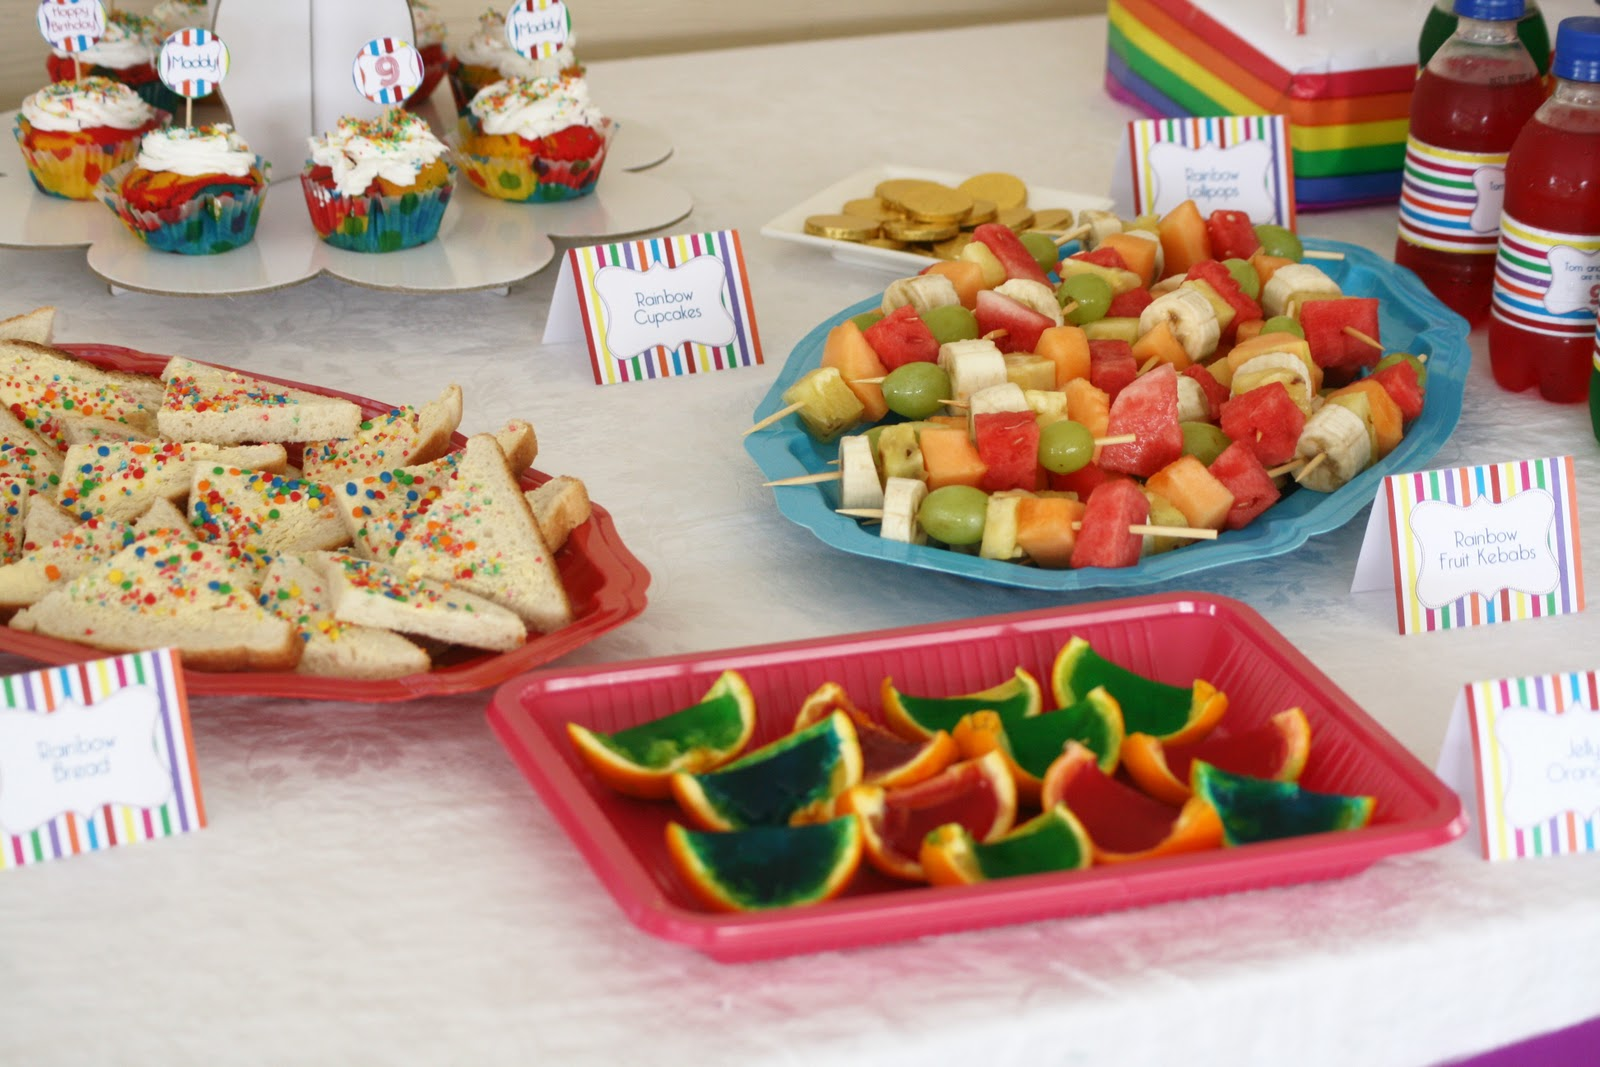 Rainbow coloured disposable platters from Crazy Clarks.